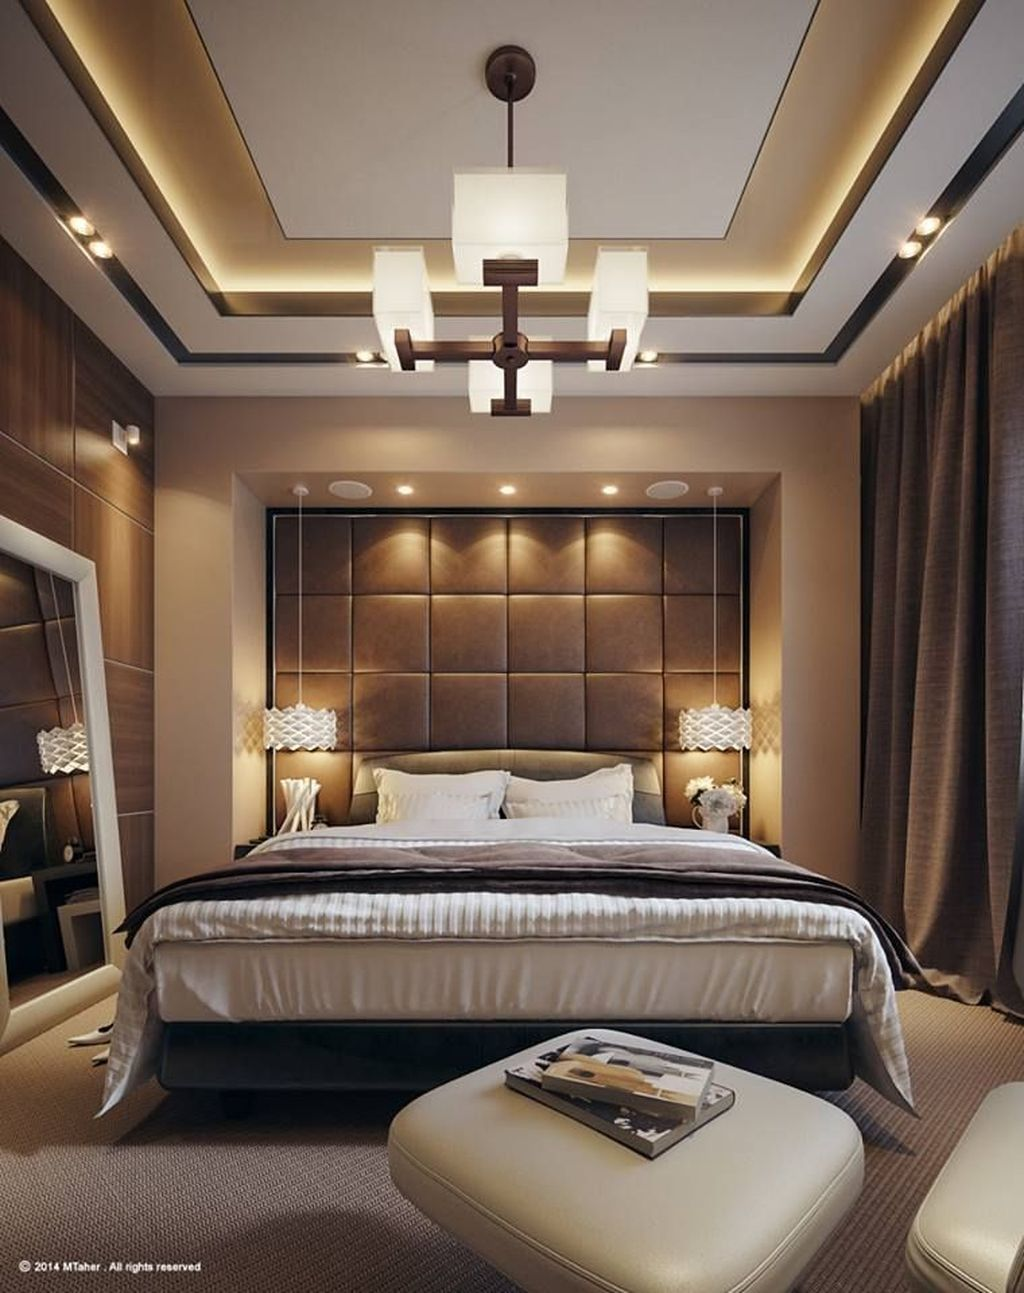 40 Affordable Ceiling Design Ideas With Decorative Lamp Luxury Bedroom Design Bedroom False Ceiling Design House Ceiling Design